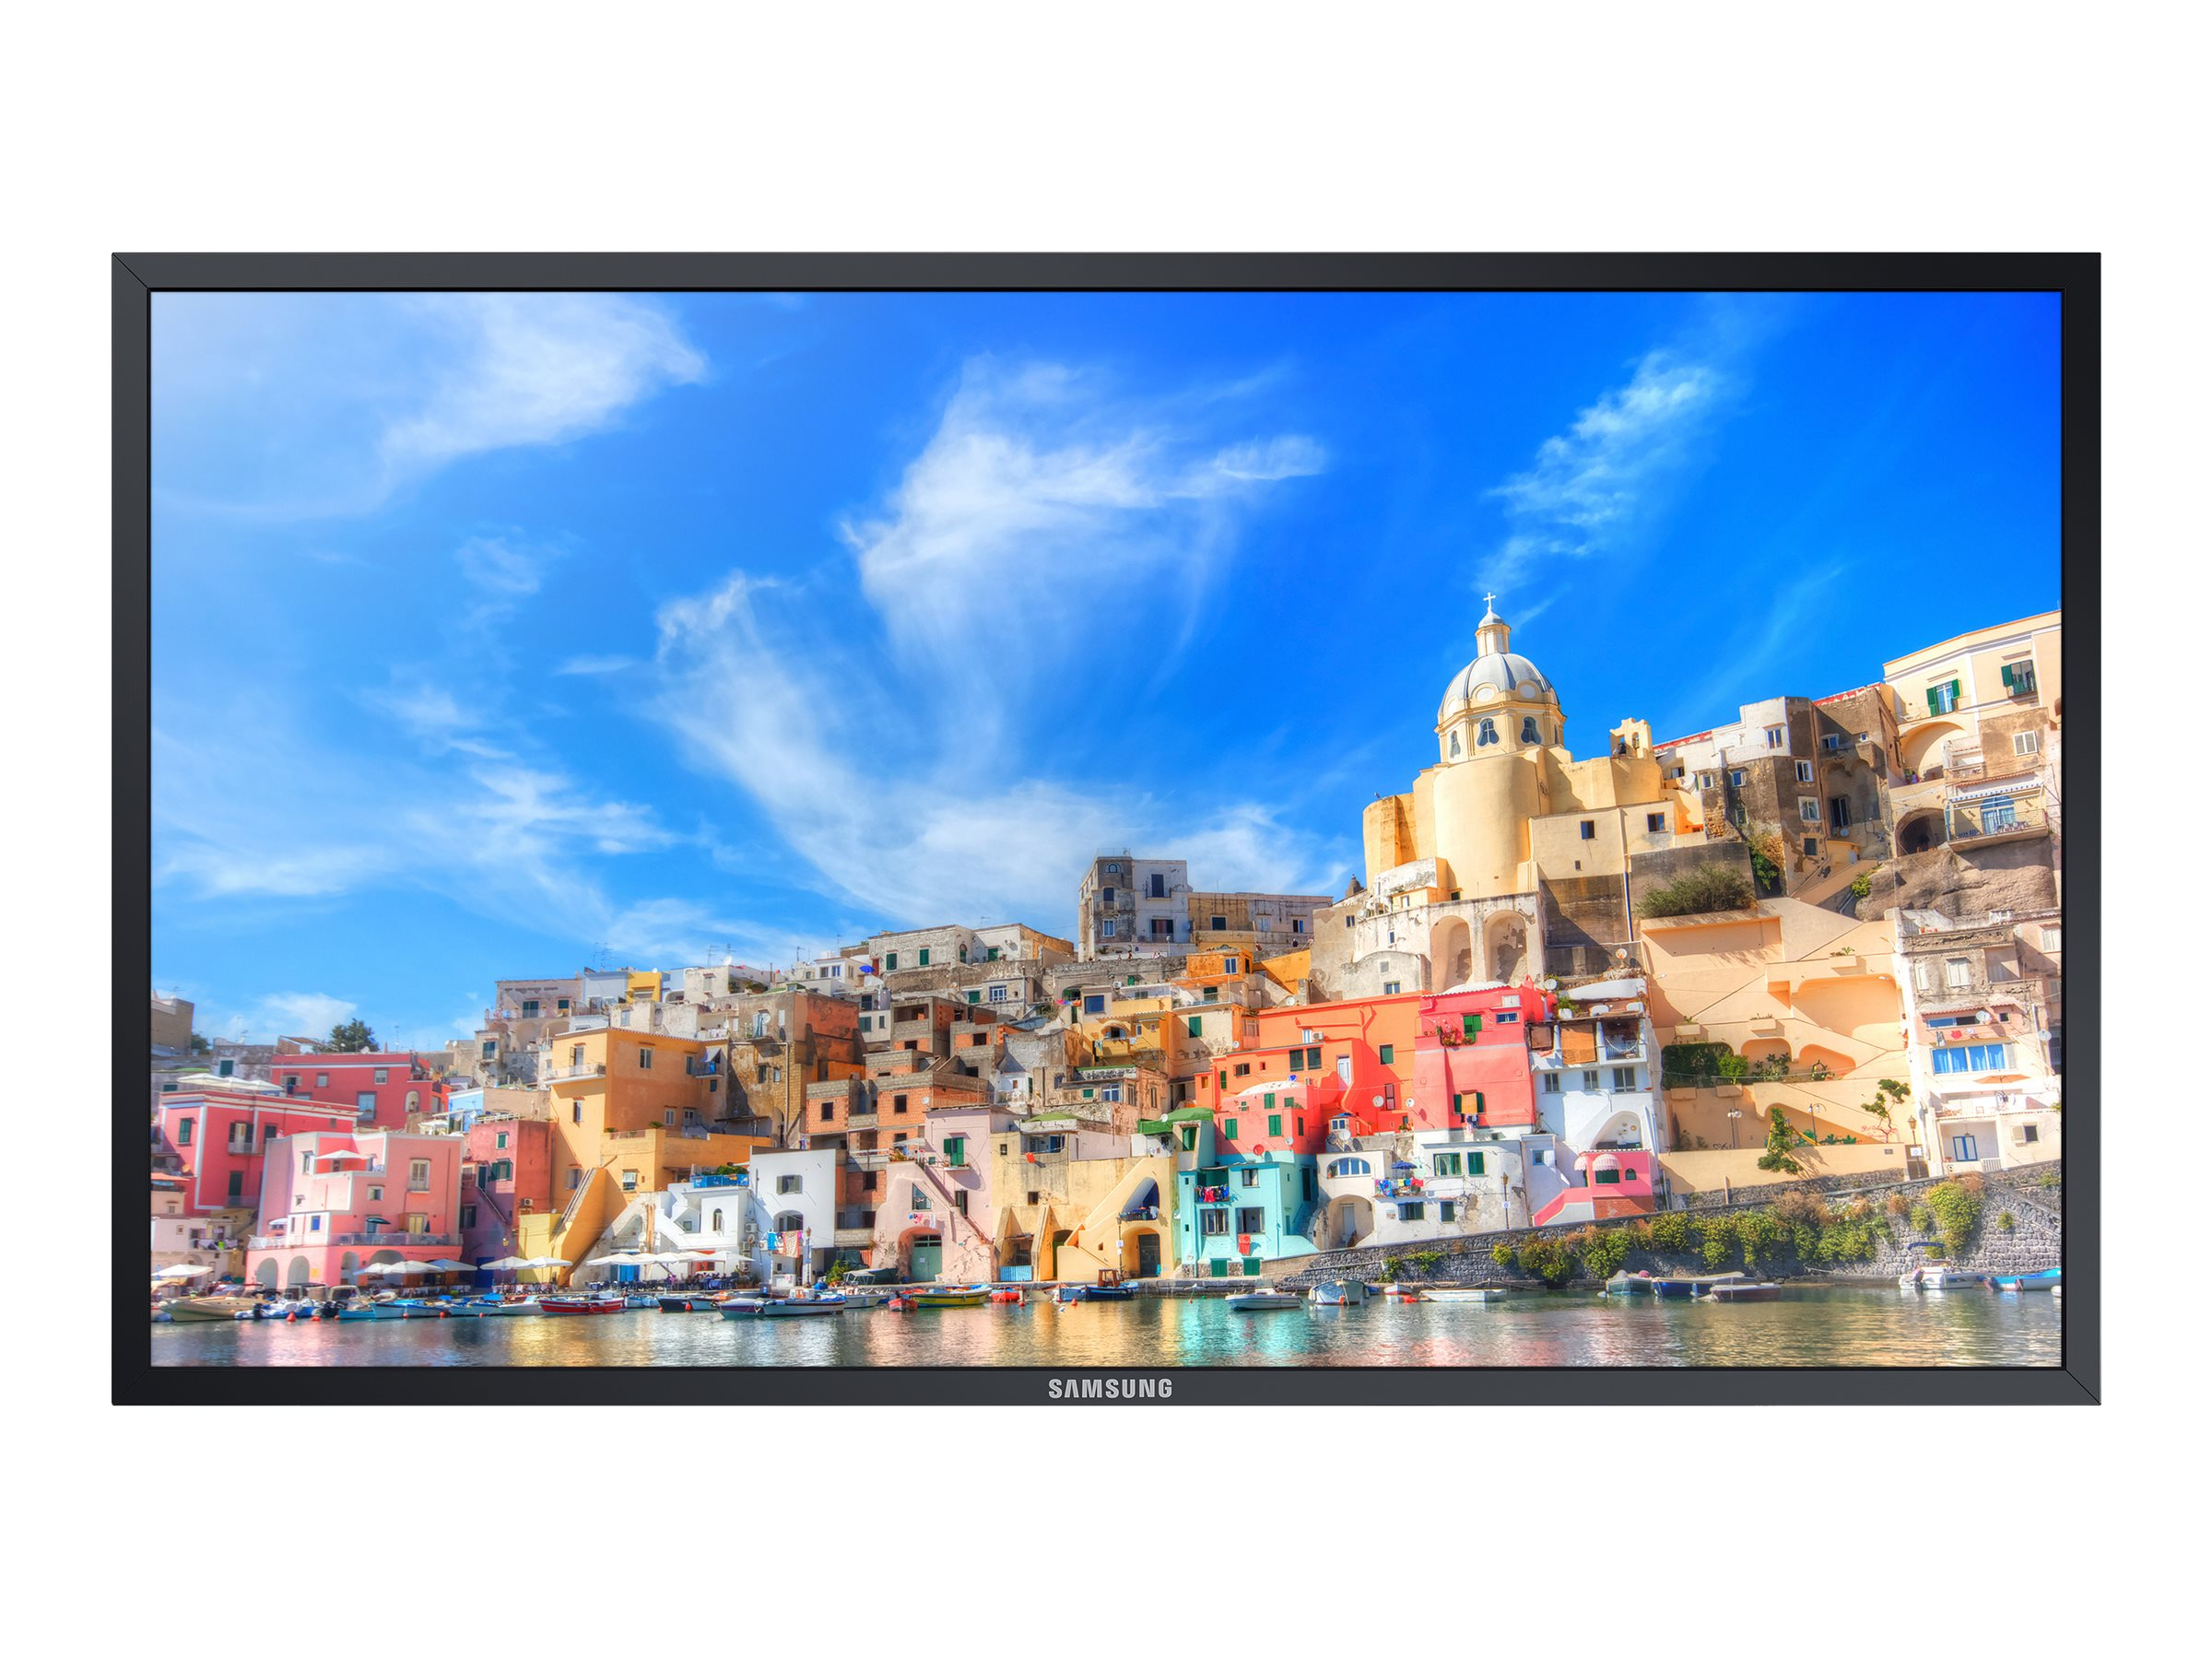 Samsung 85 QMD-BR Ultra HD LED-LCD Touchscreen Display, Black, QM85D-BR